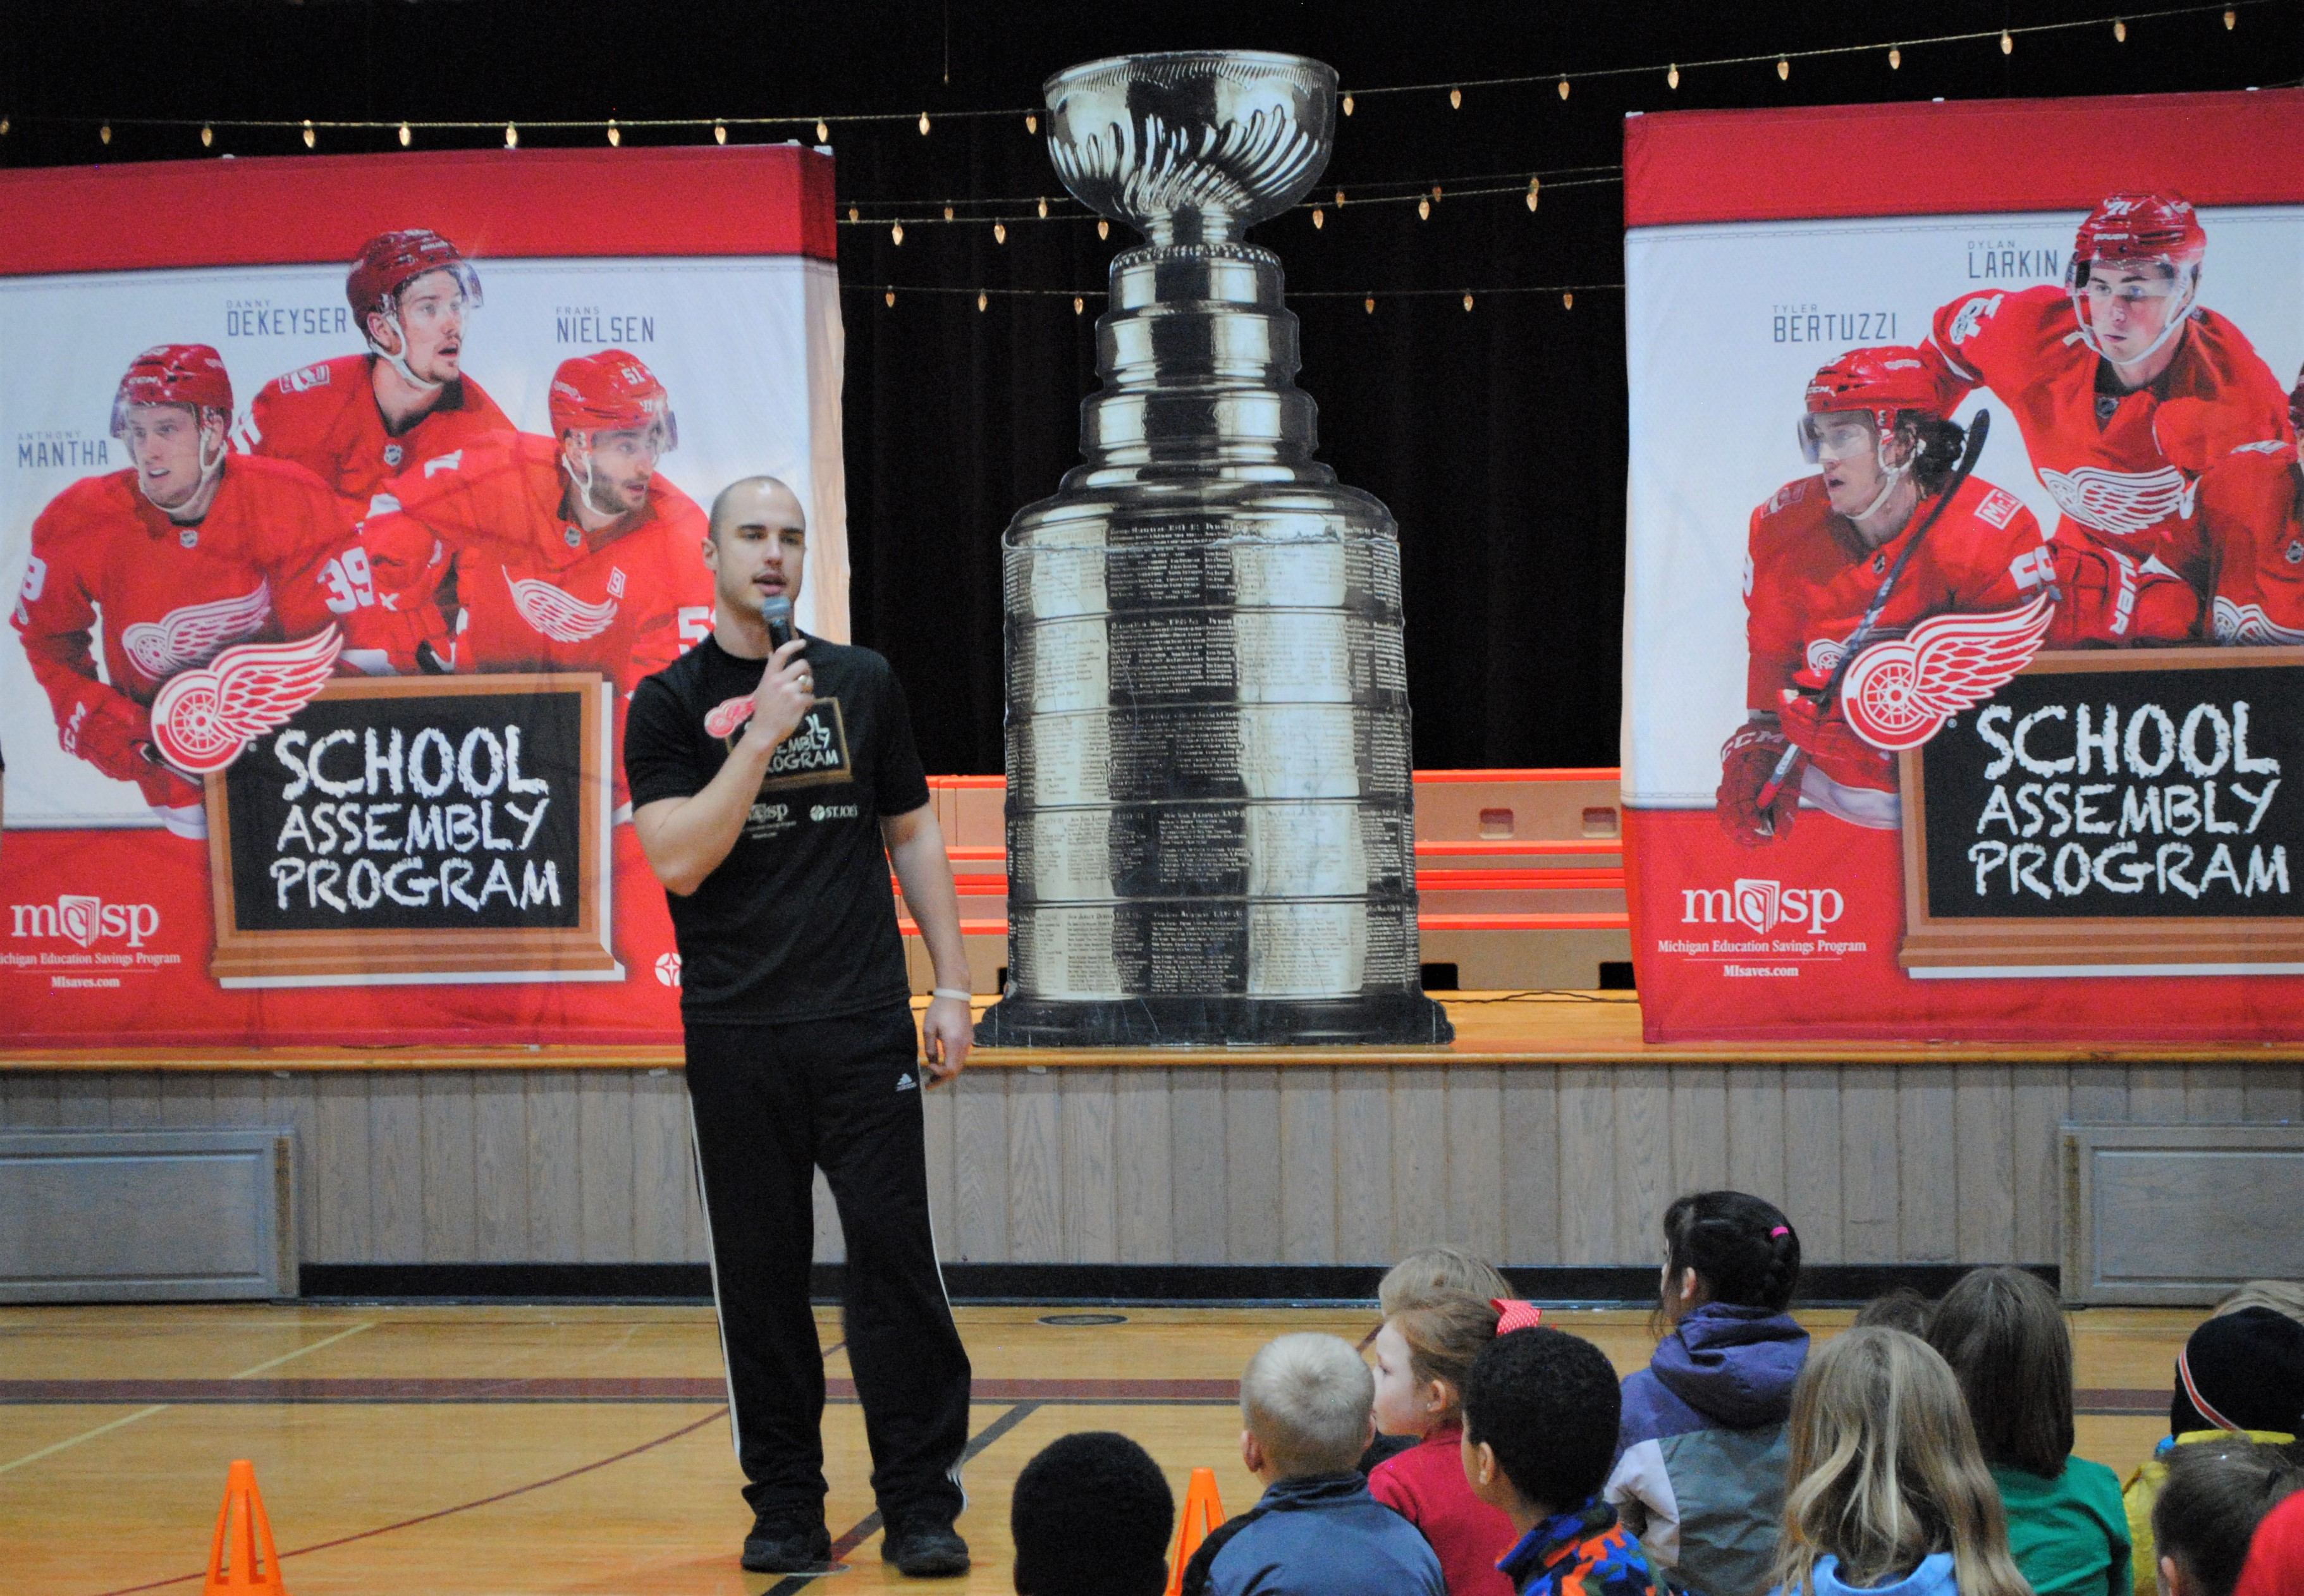 Coach Ryan from the Detroit Red Wings organization spoke with Kingsbury students about health and dedication to school. Photo by Shelby Tankersley.